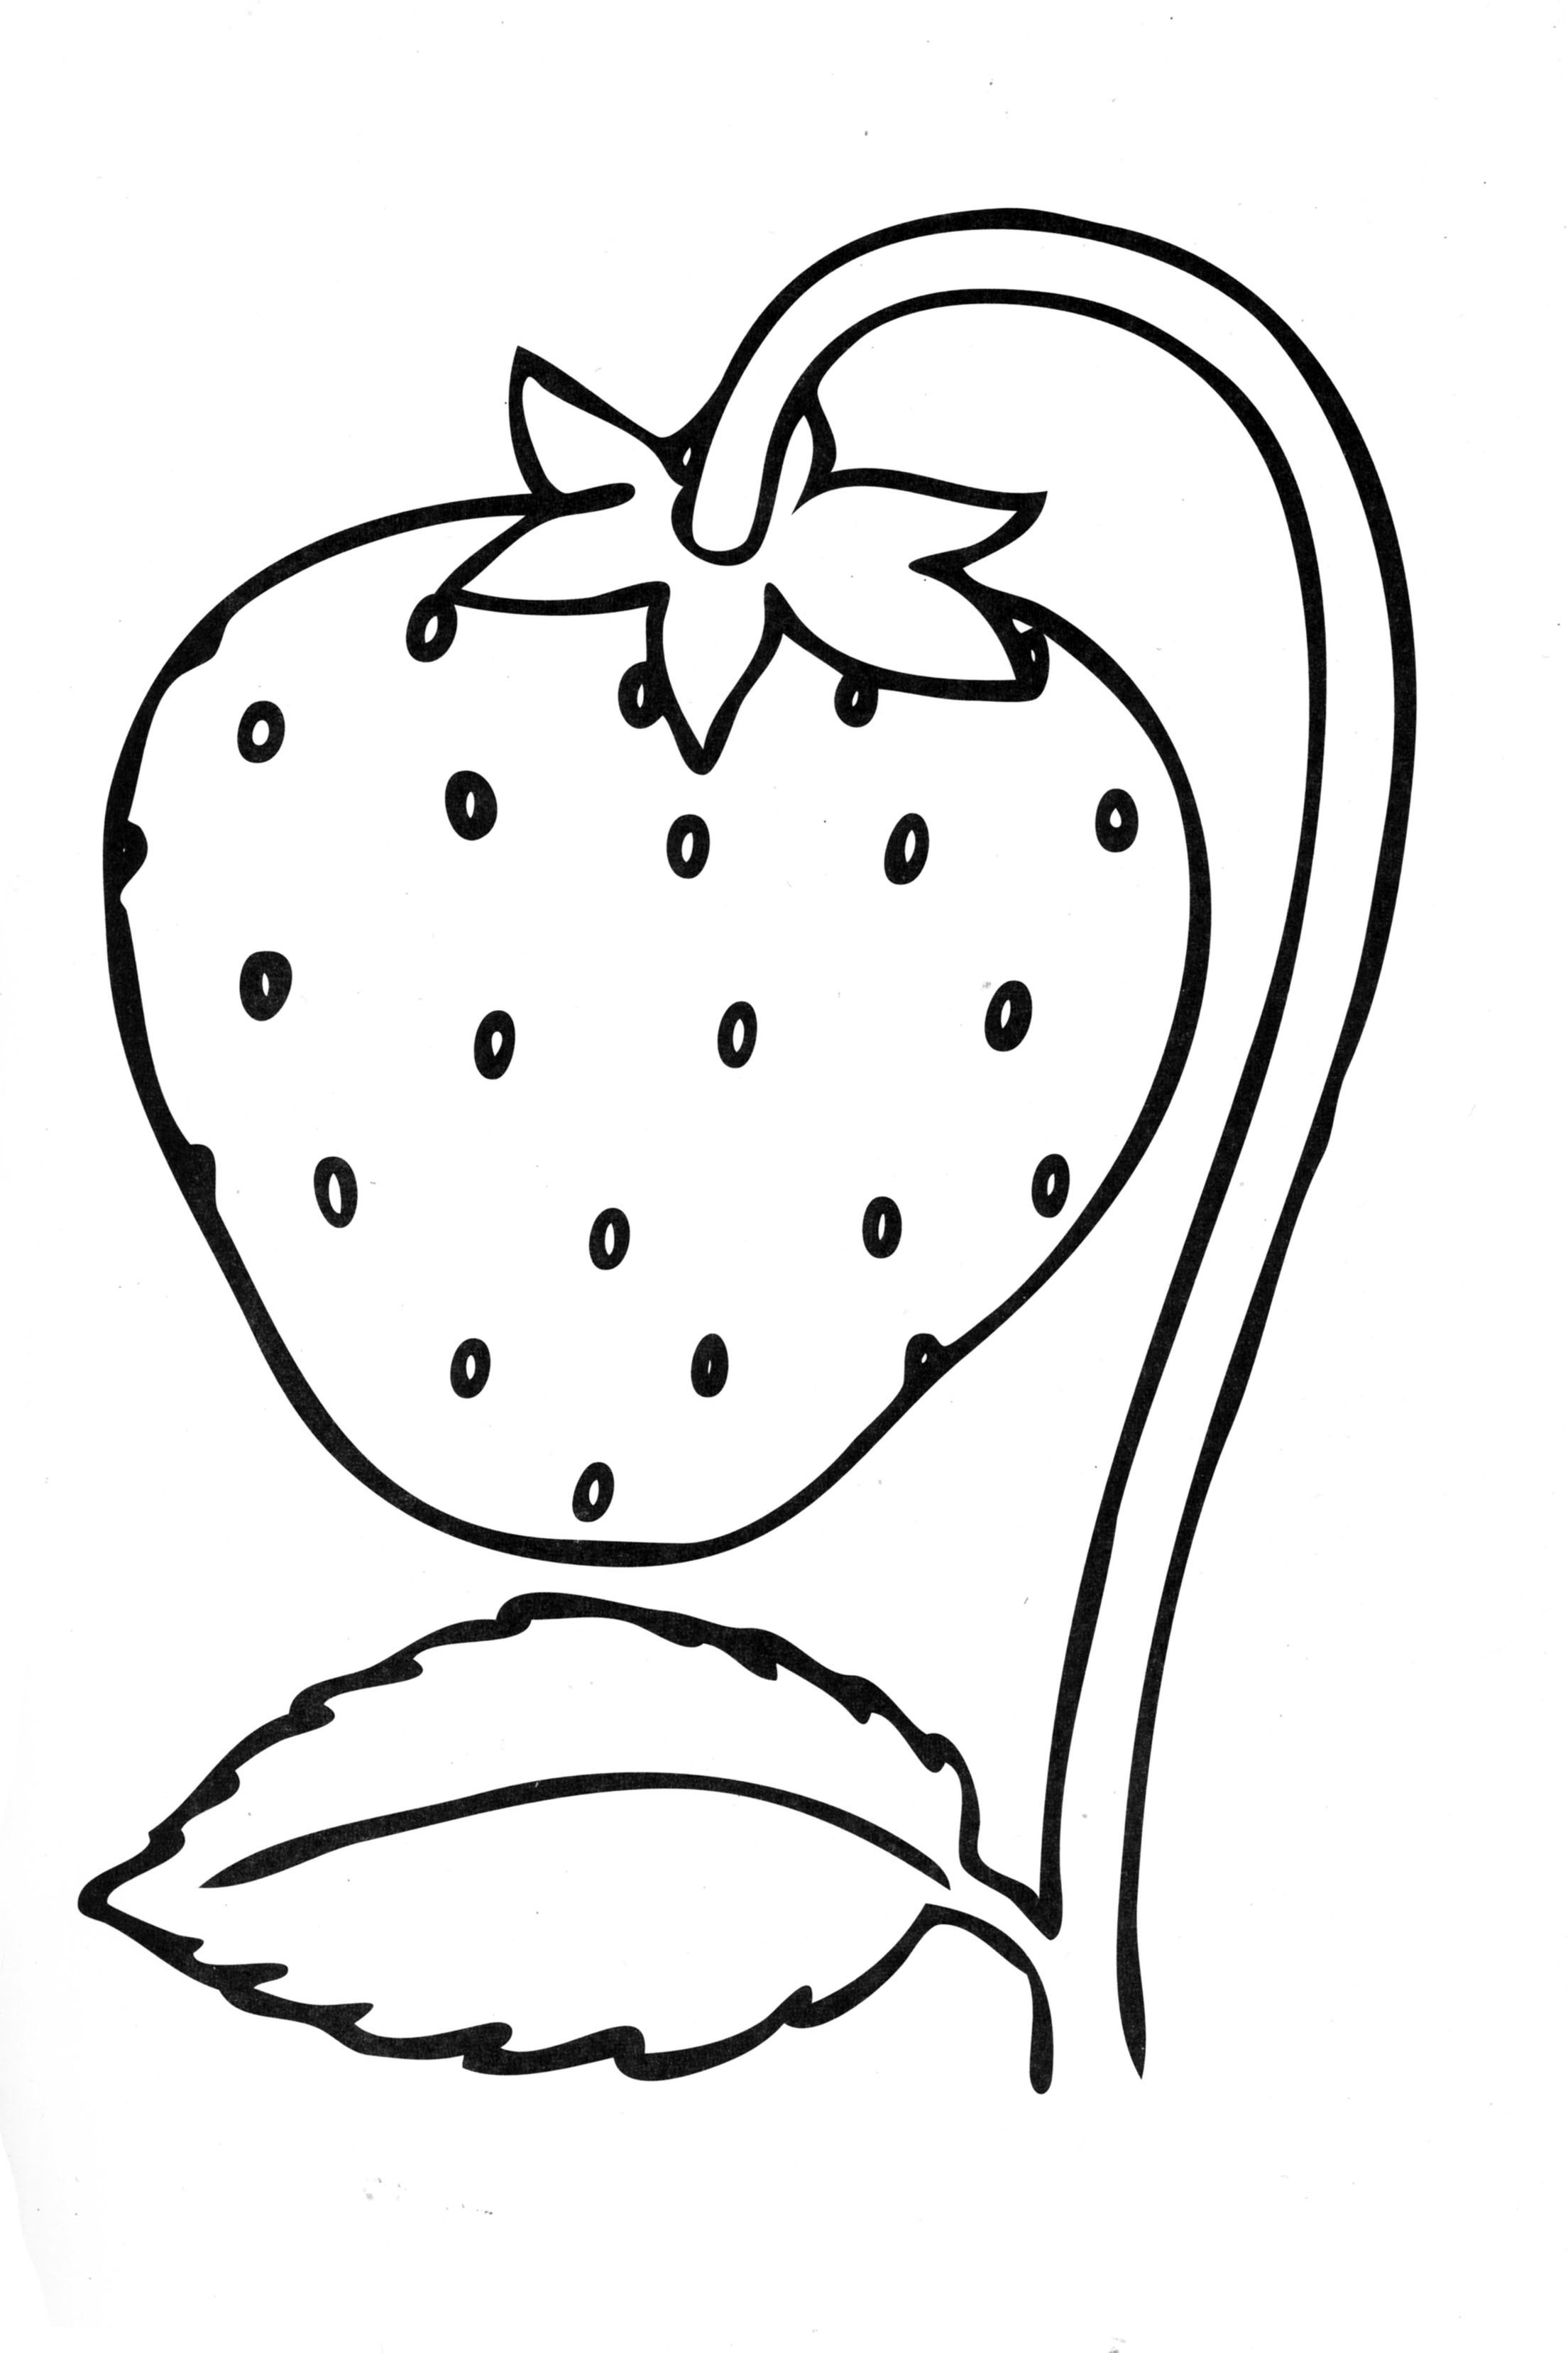 strawberry coloring image strawberry coloring pages download and print strawberry coloring strawberry image